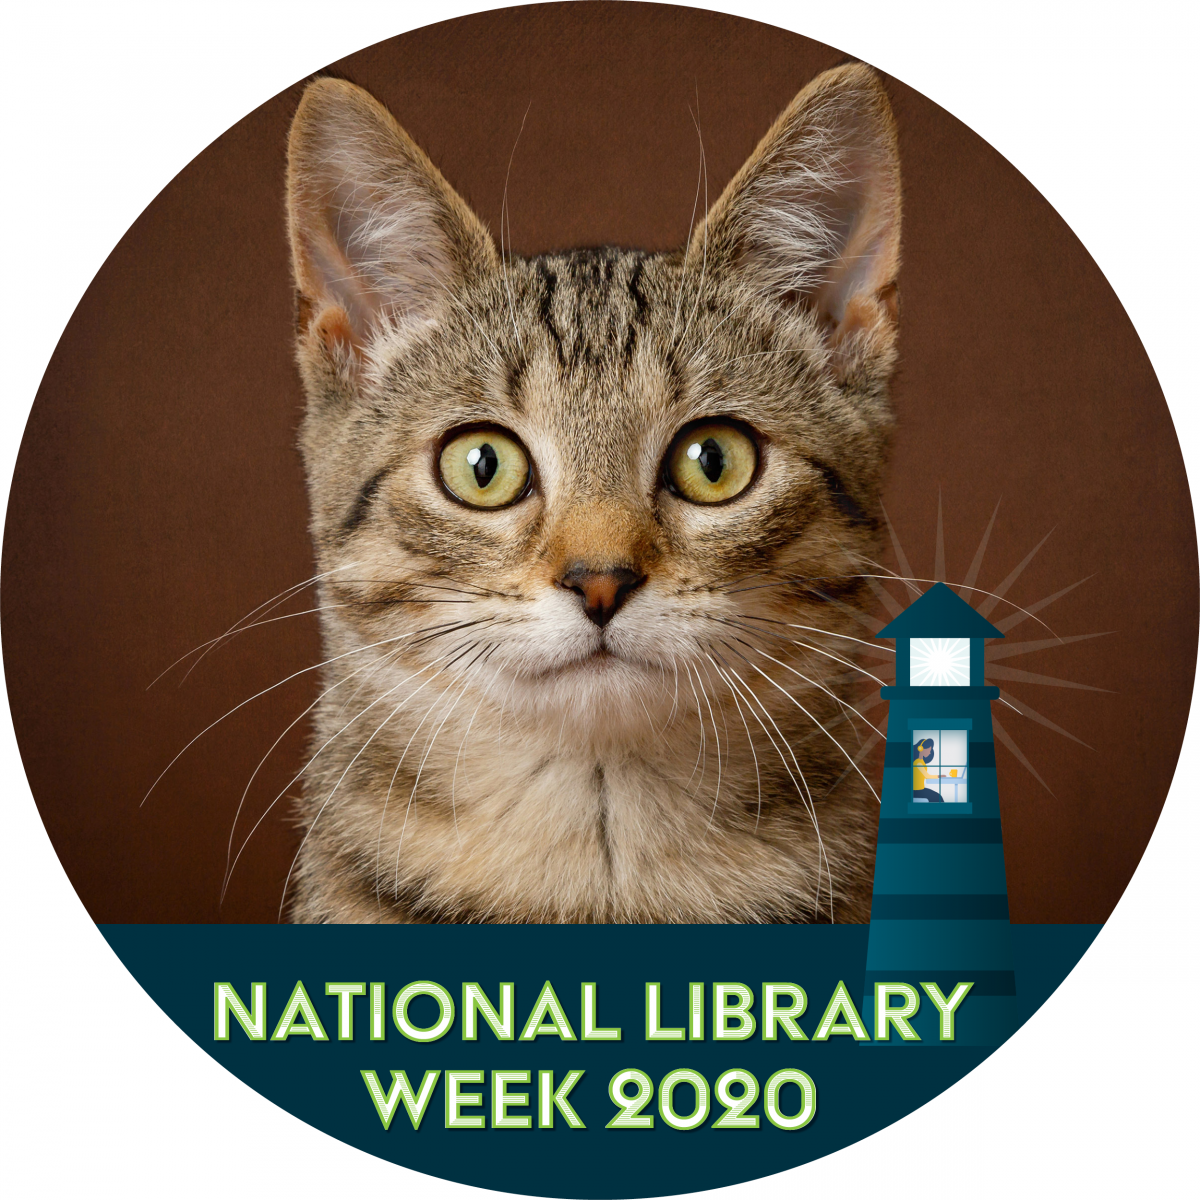 Cat using the National Library Week Fcebook frame